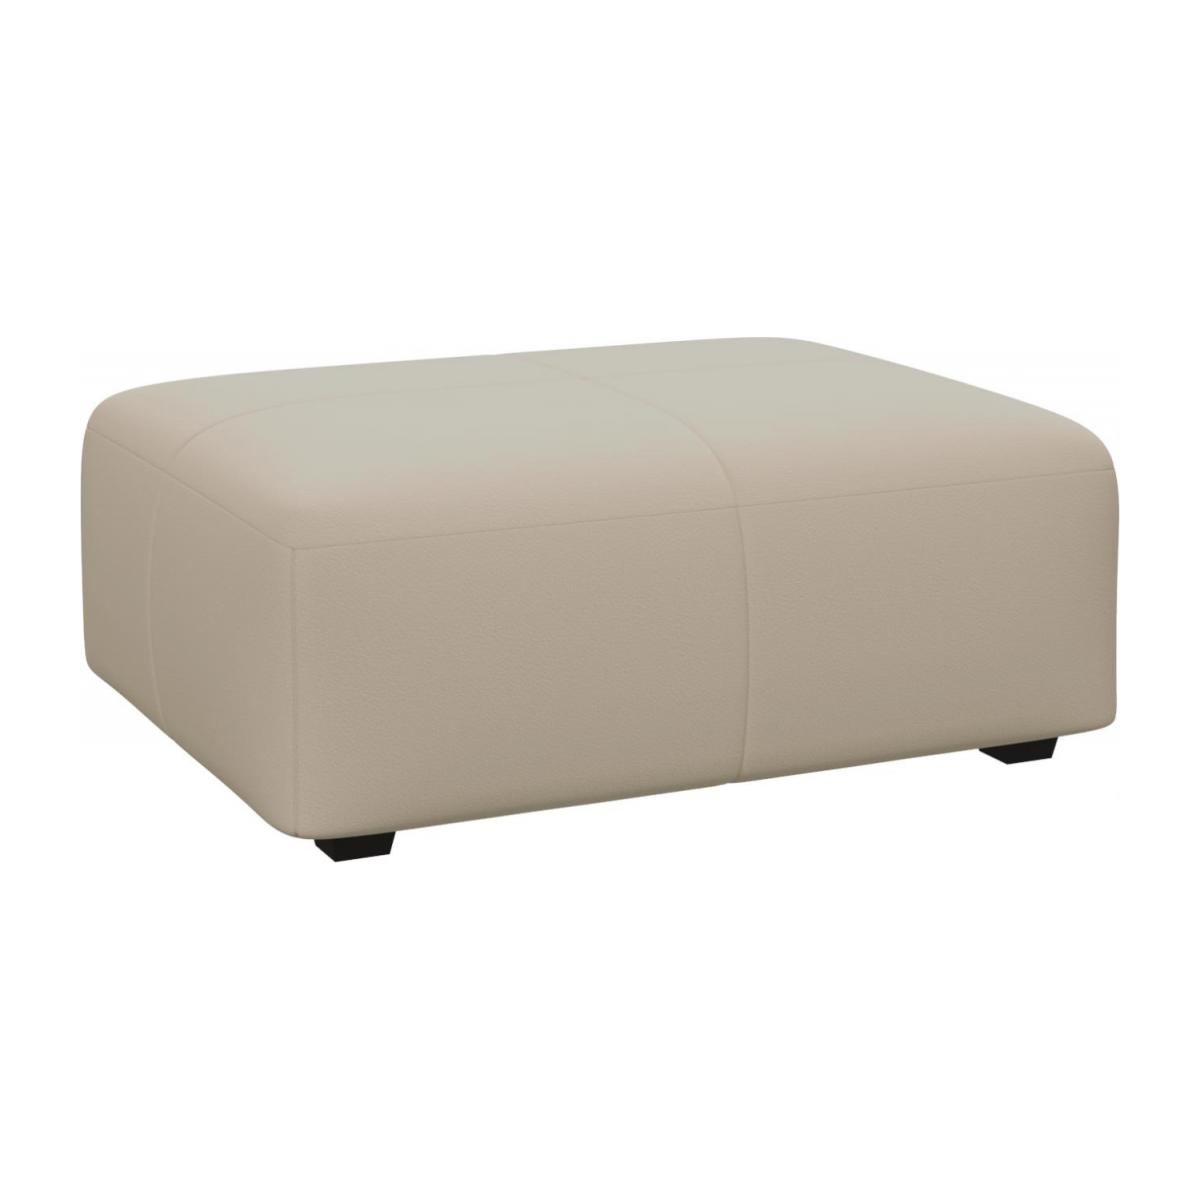 Footstool in Savoy semi-aniline leather, off white n°1